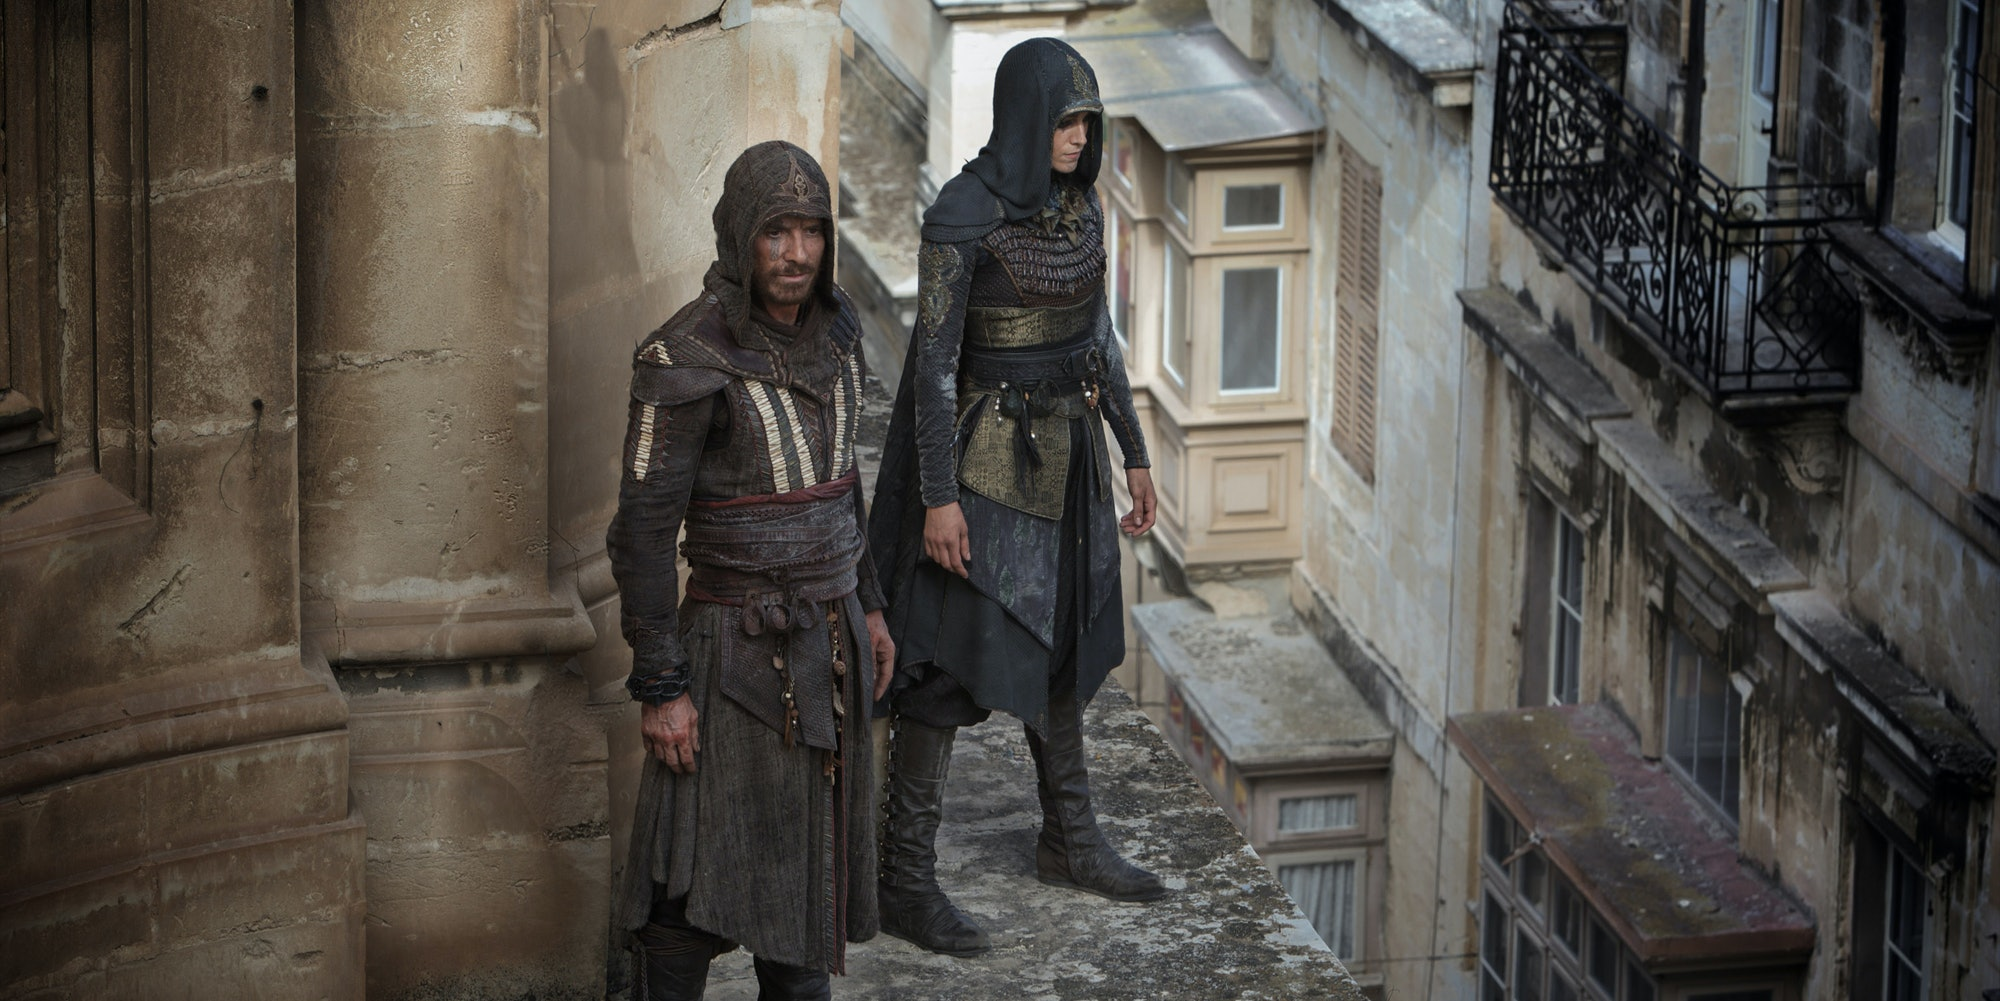 When Nothing's True, Everything's Permitted in 'Assassin's Creed'